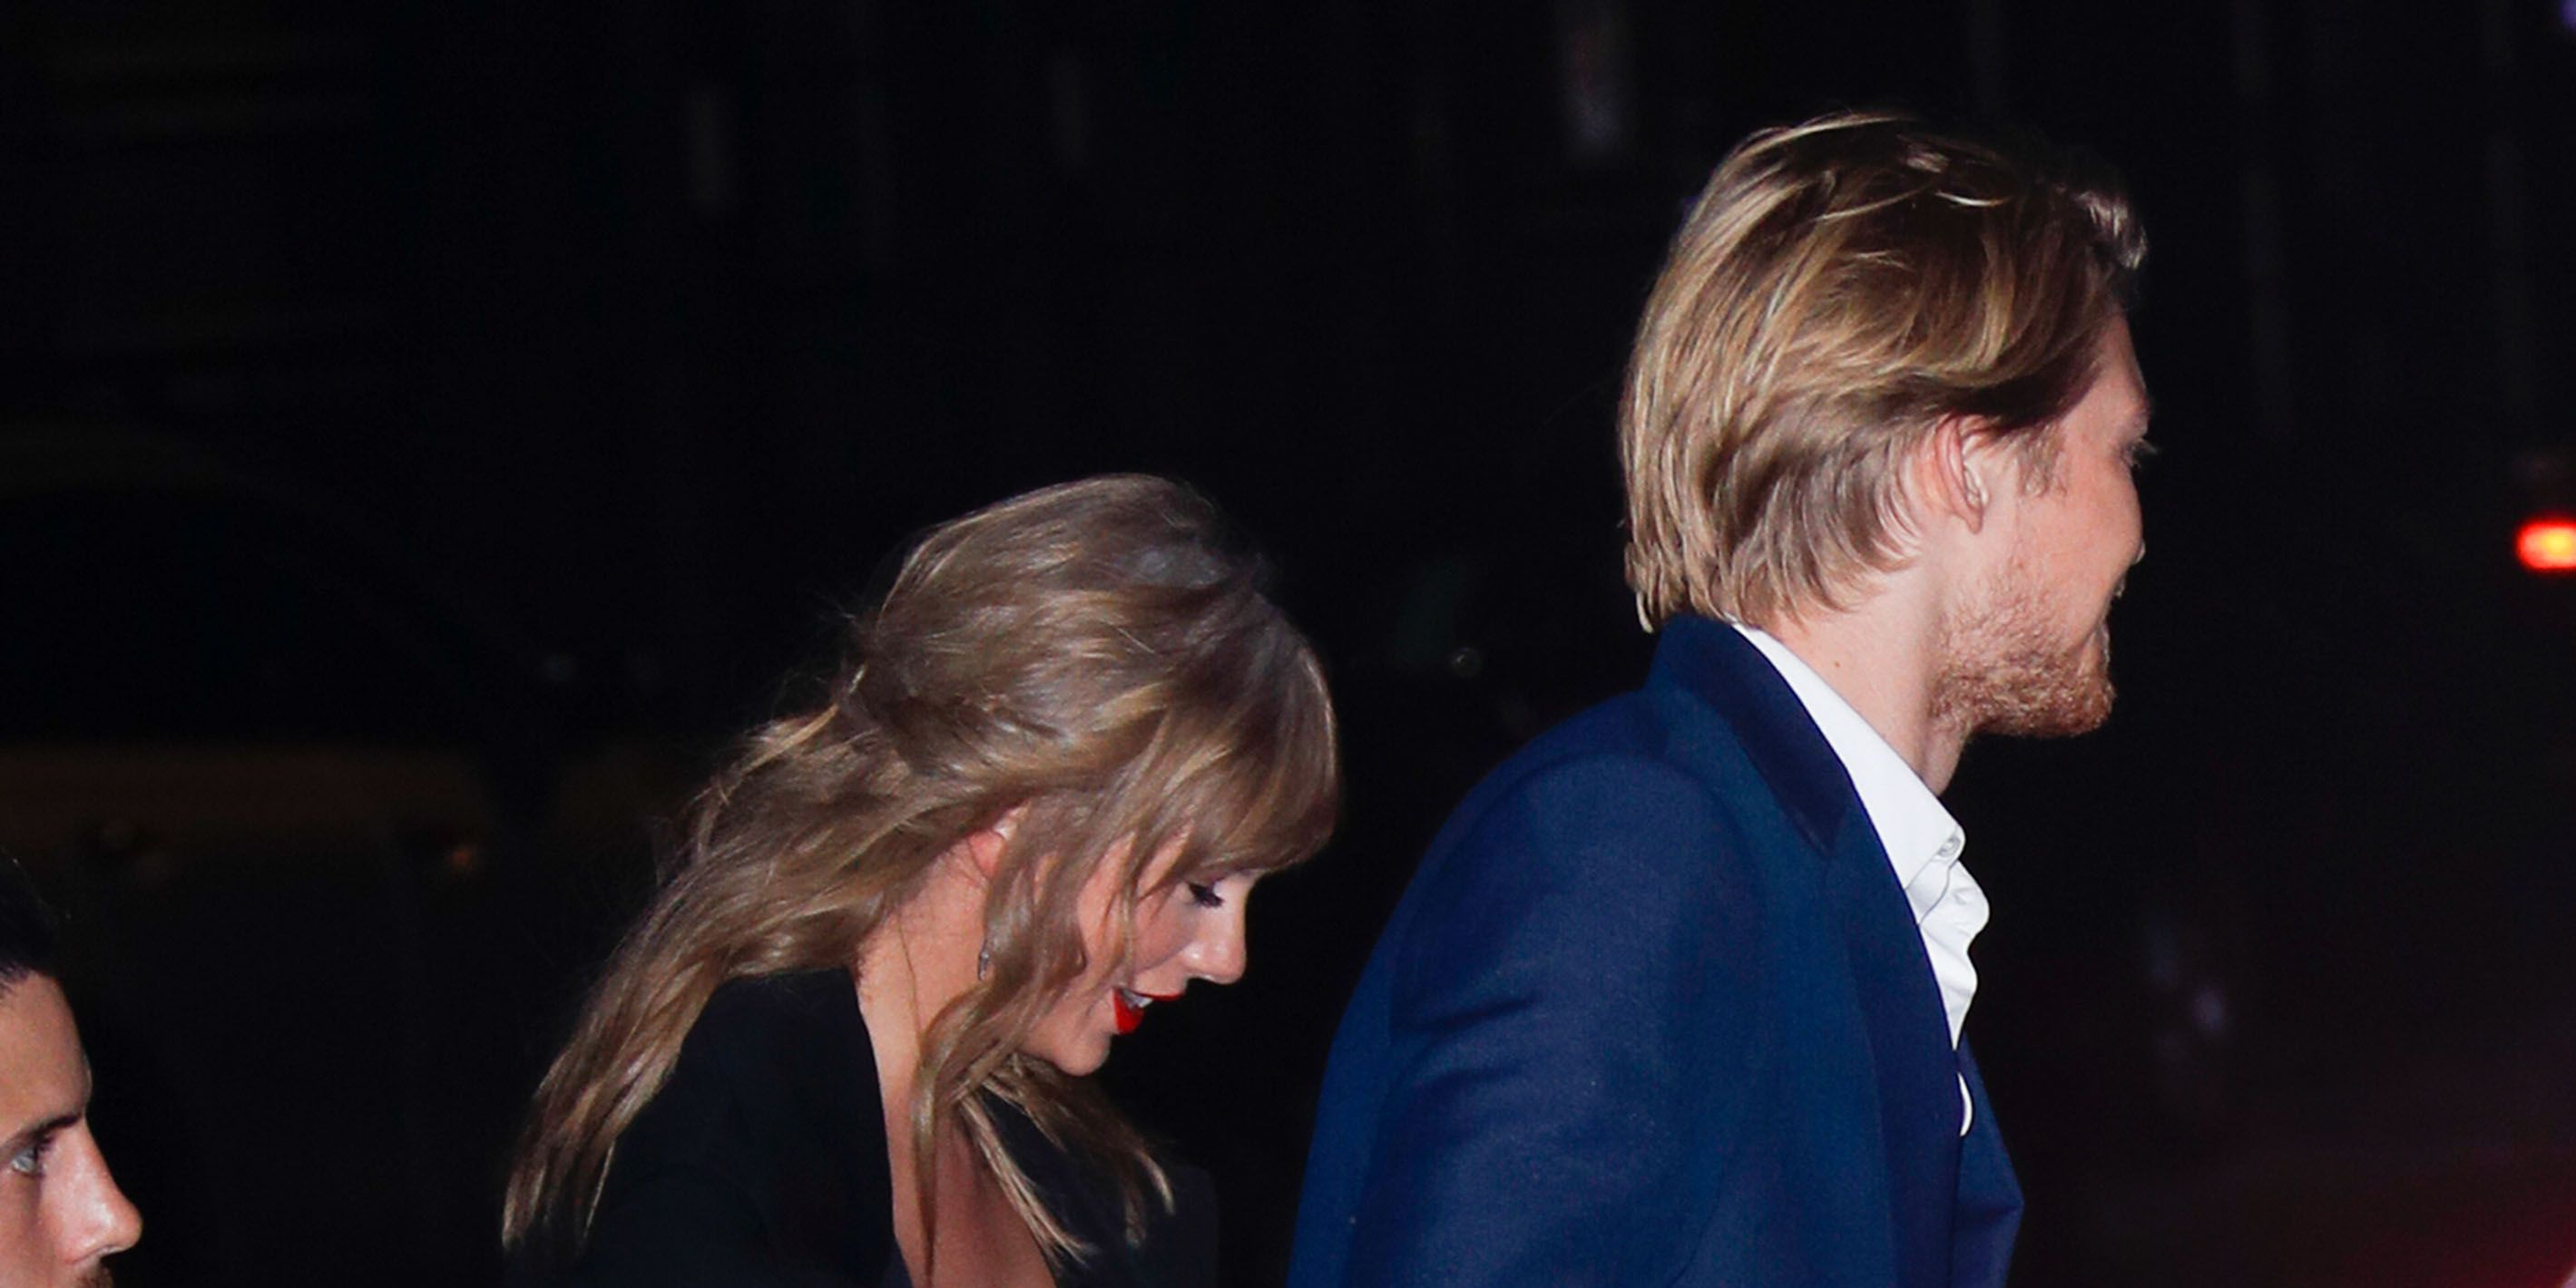 Taylor Swift and her boyfriend Joe Alwyn have been photographed holding hands on a rare public outing